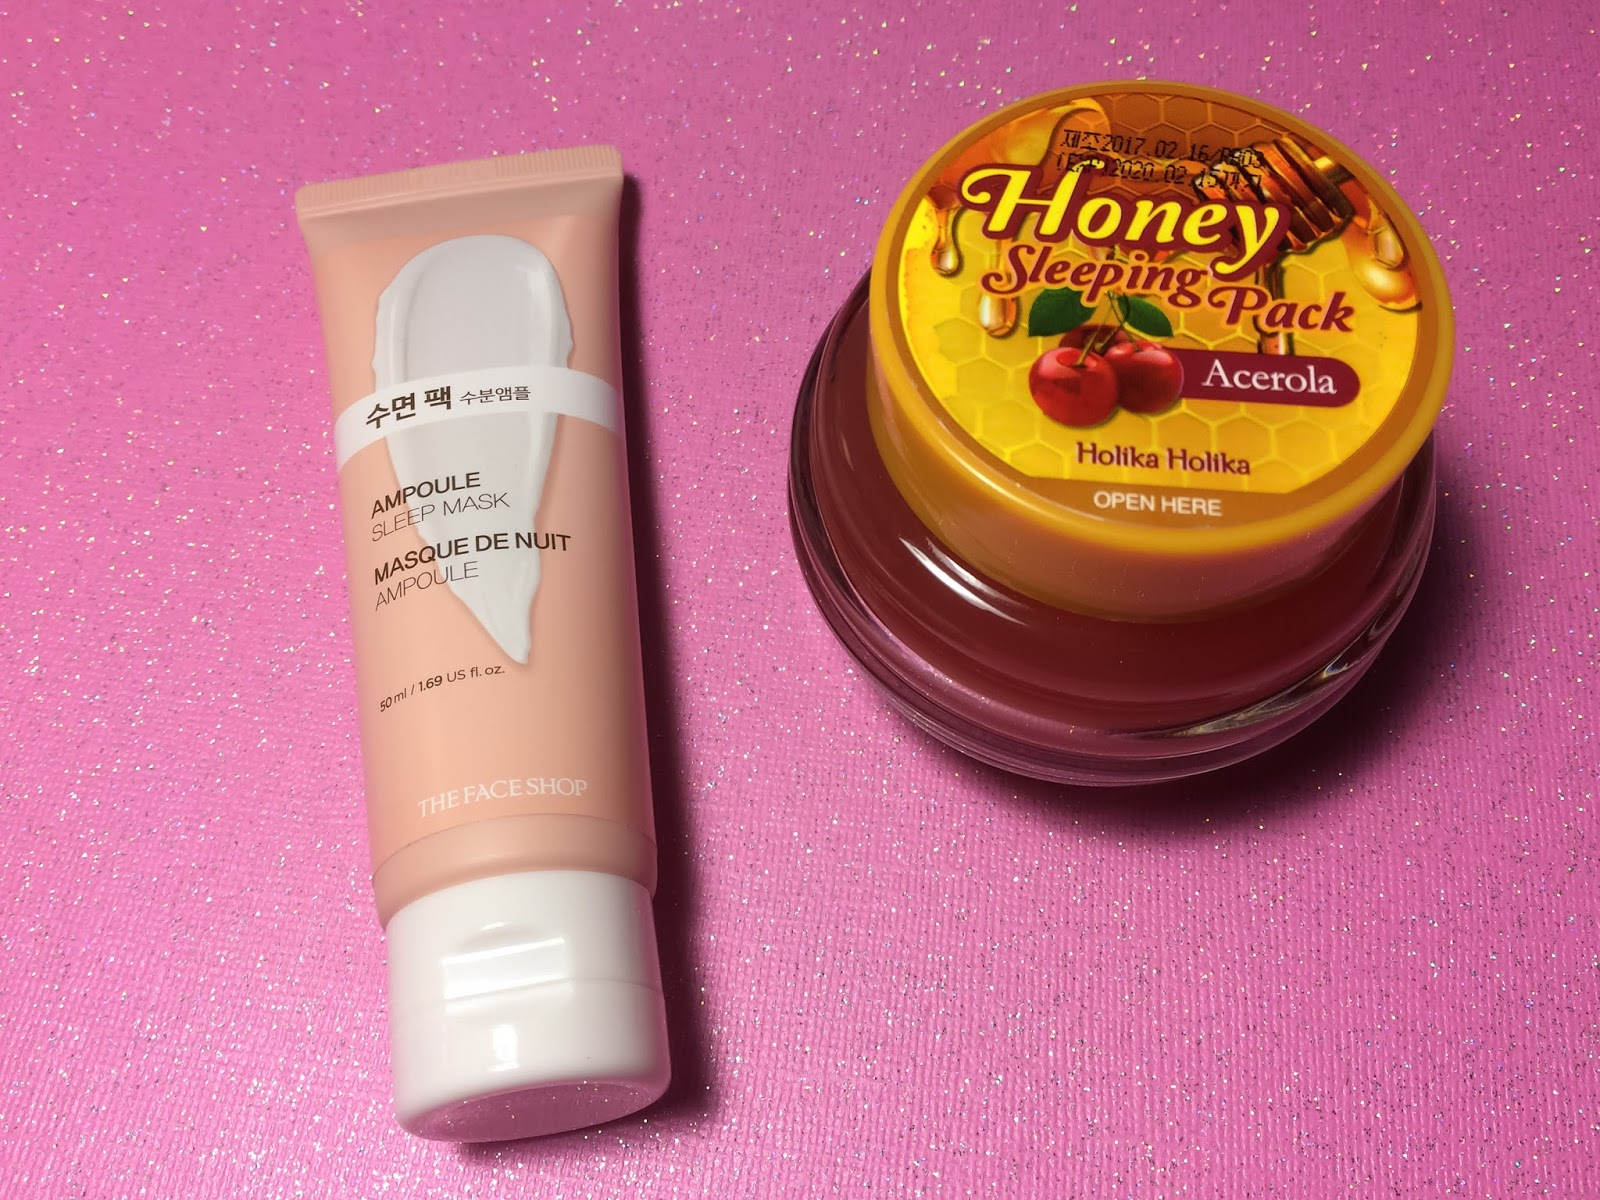 Whats New In My Stash Part Two Thesaem Saemmul Fruits Lip Sleeping Pack When Compared To Other Fellow Ebay Sellers Especially Those Who Are Already Rather Affordable Rinishop Tends Have Some Deeper Discounts